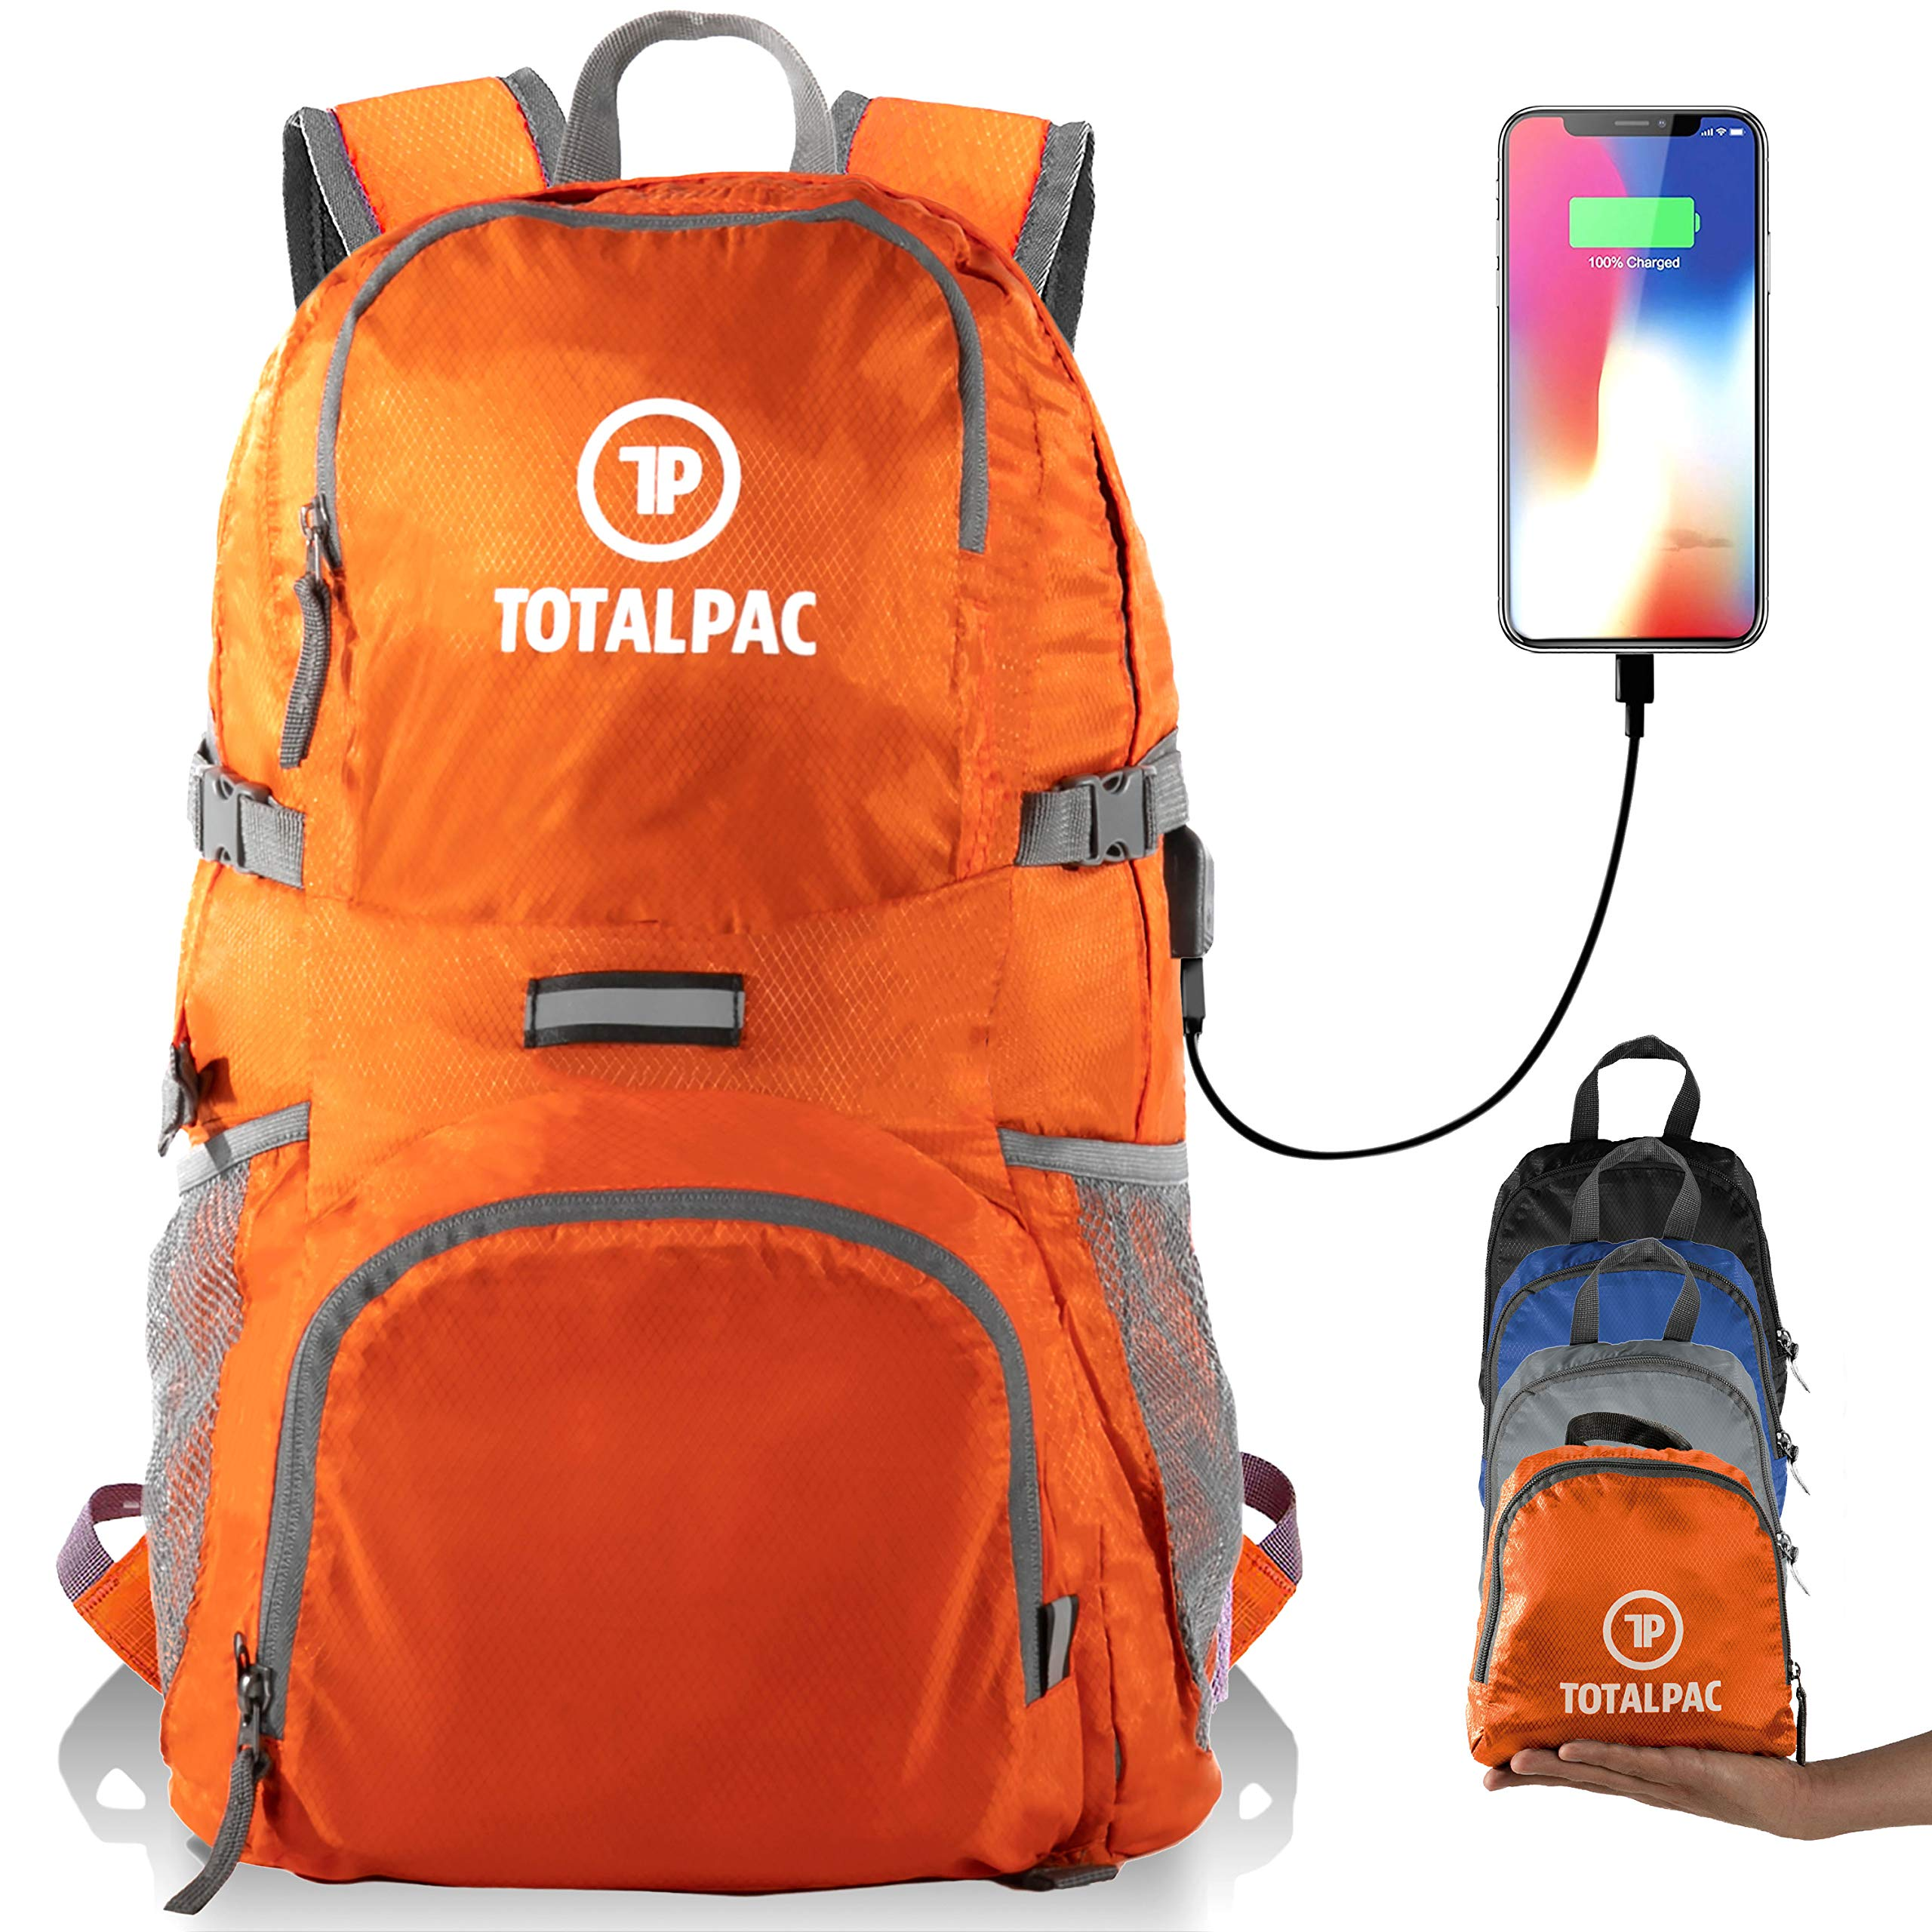 Totalpac - Hiking Daypack - Foldable Backpack for Traveling, Hiking & Camping by Totalpac